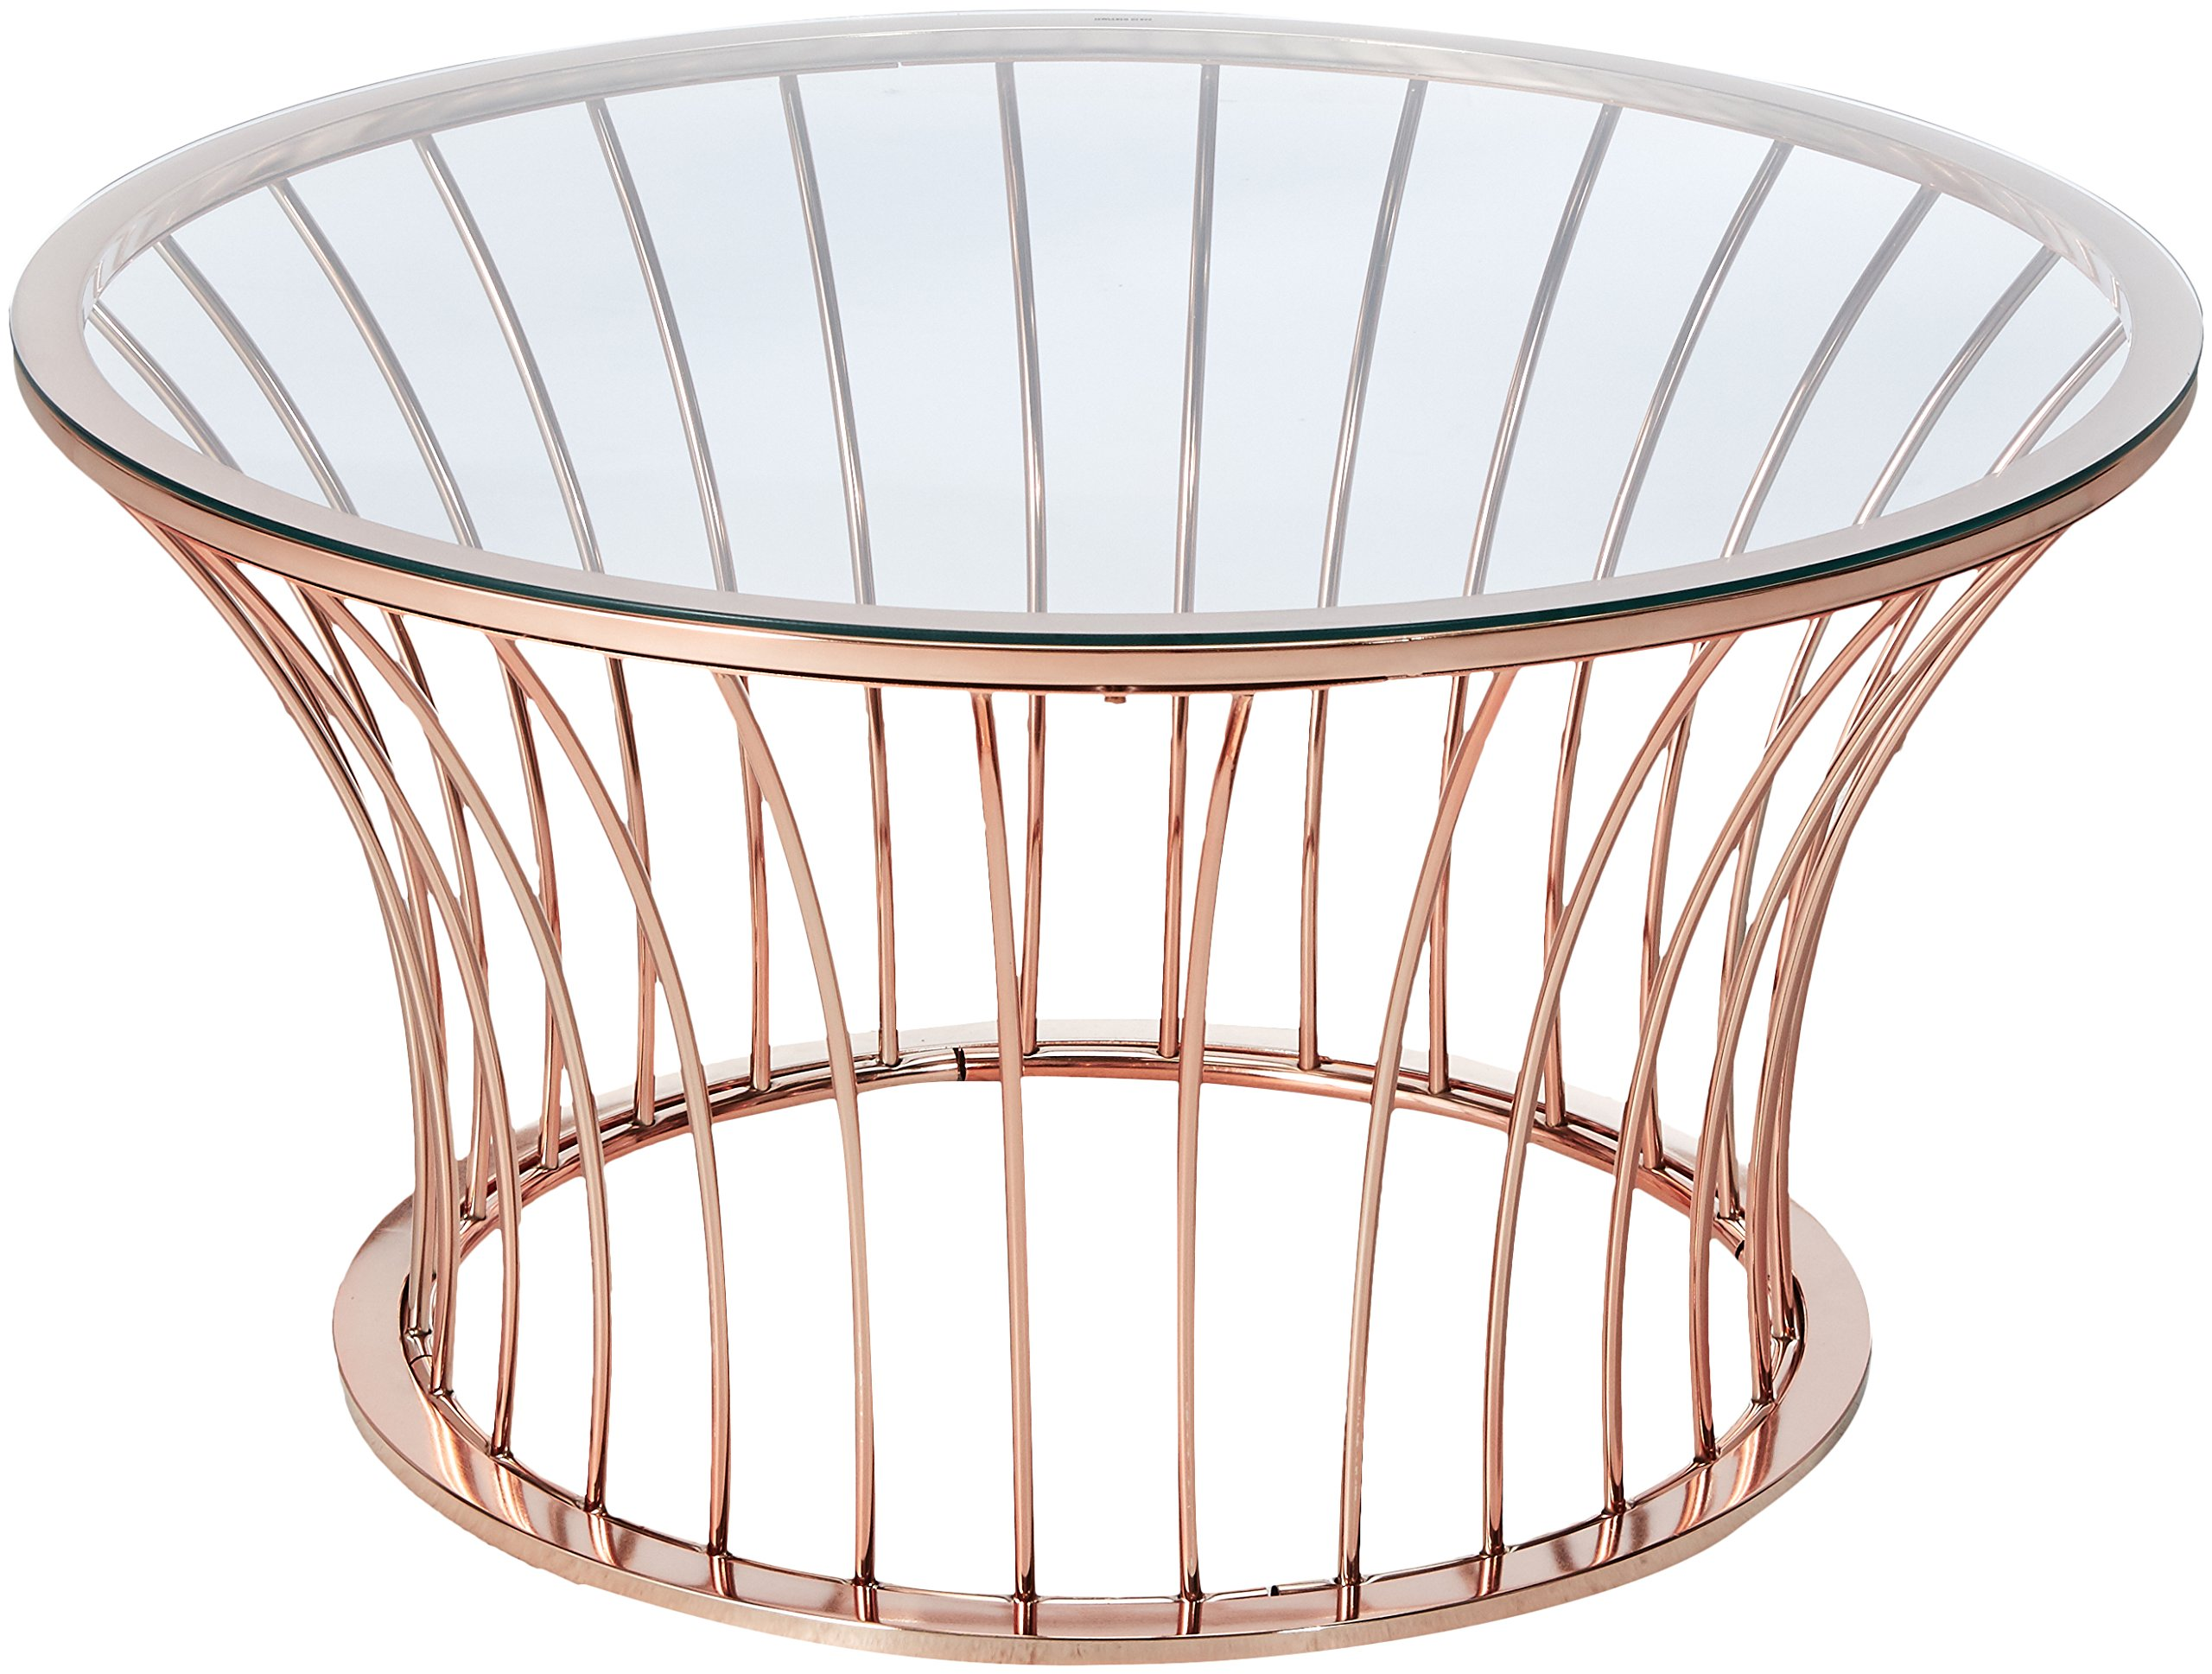 247SHOPATHOME IDF-4124C Coffee-Tables, Rose Gold - Style: contemporary Finish: Rose Gold Slatted design - living-room-furniture, living-room, coffee-tables - 81j78d07VNL -